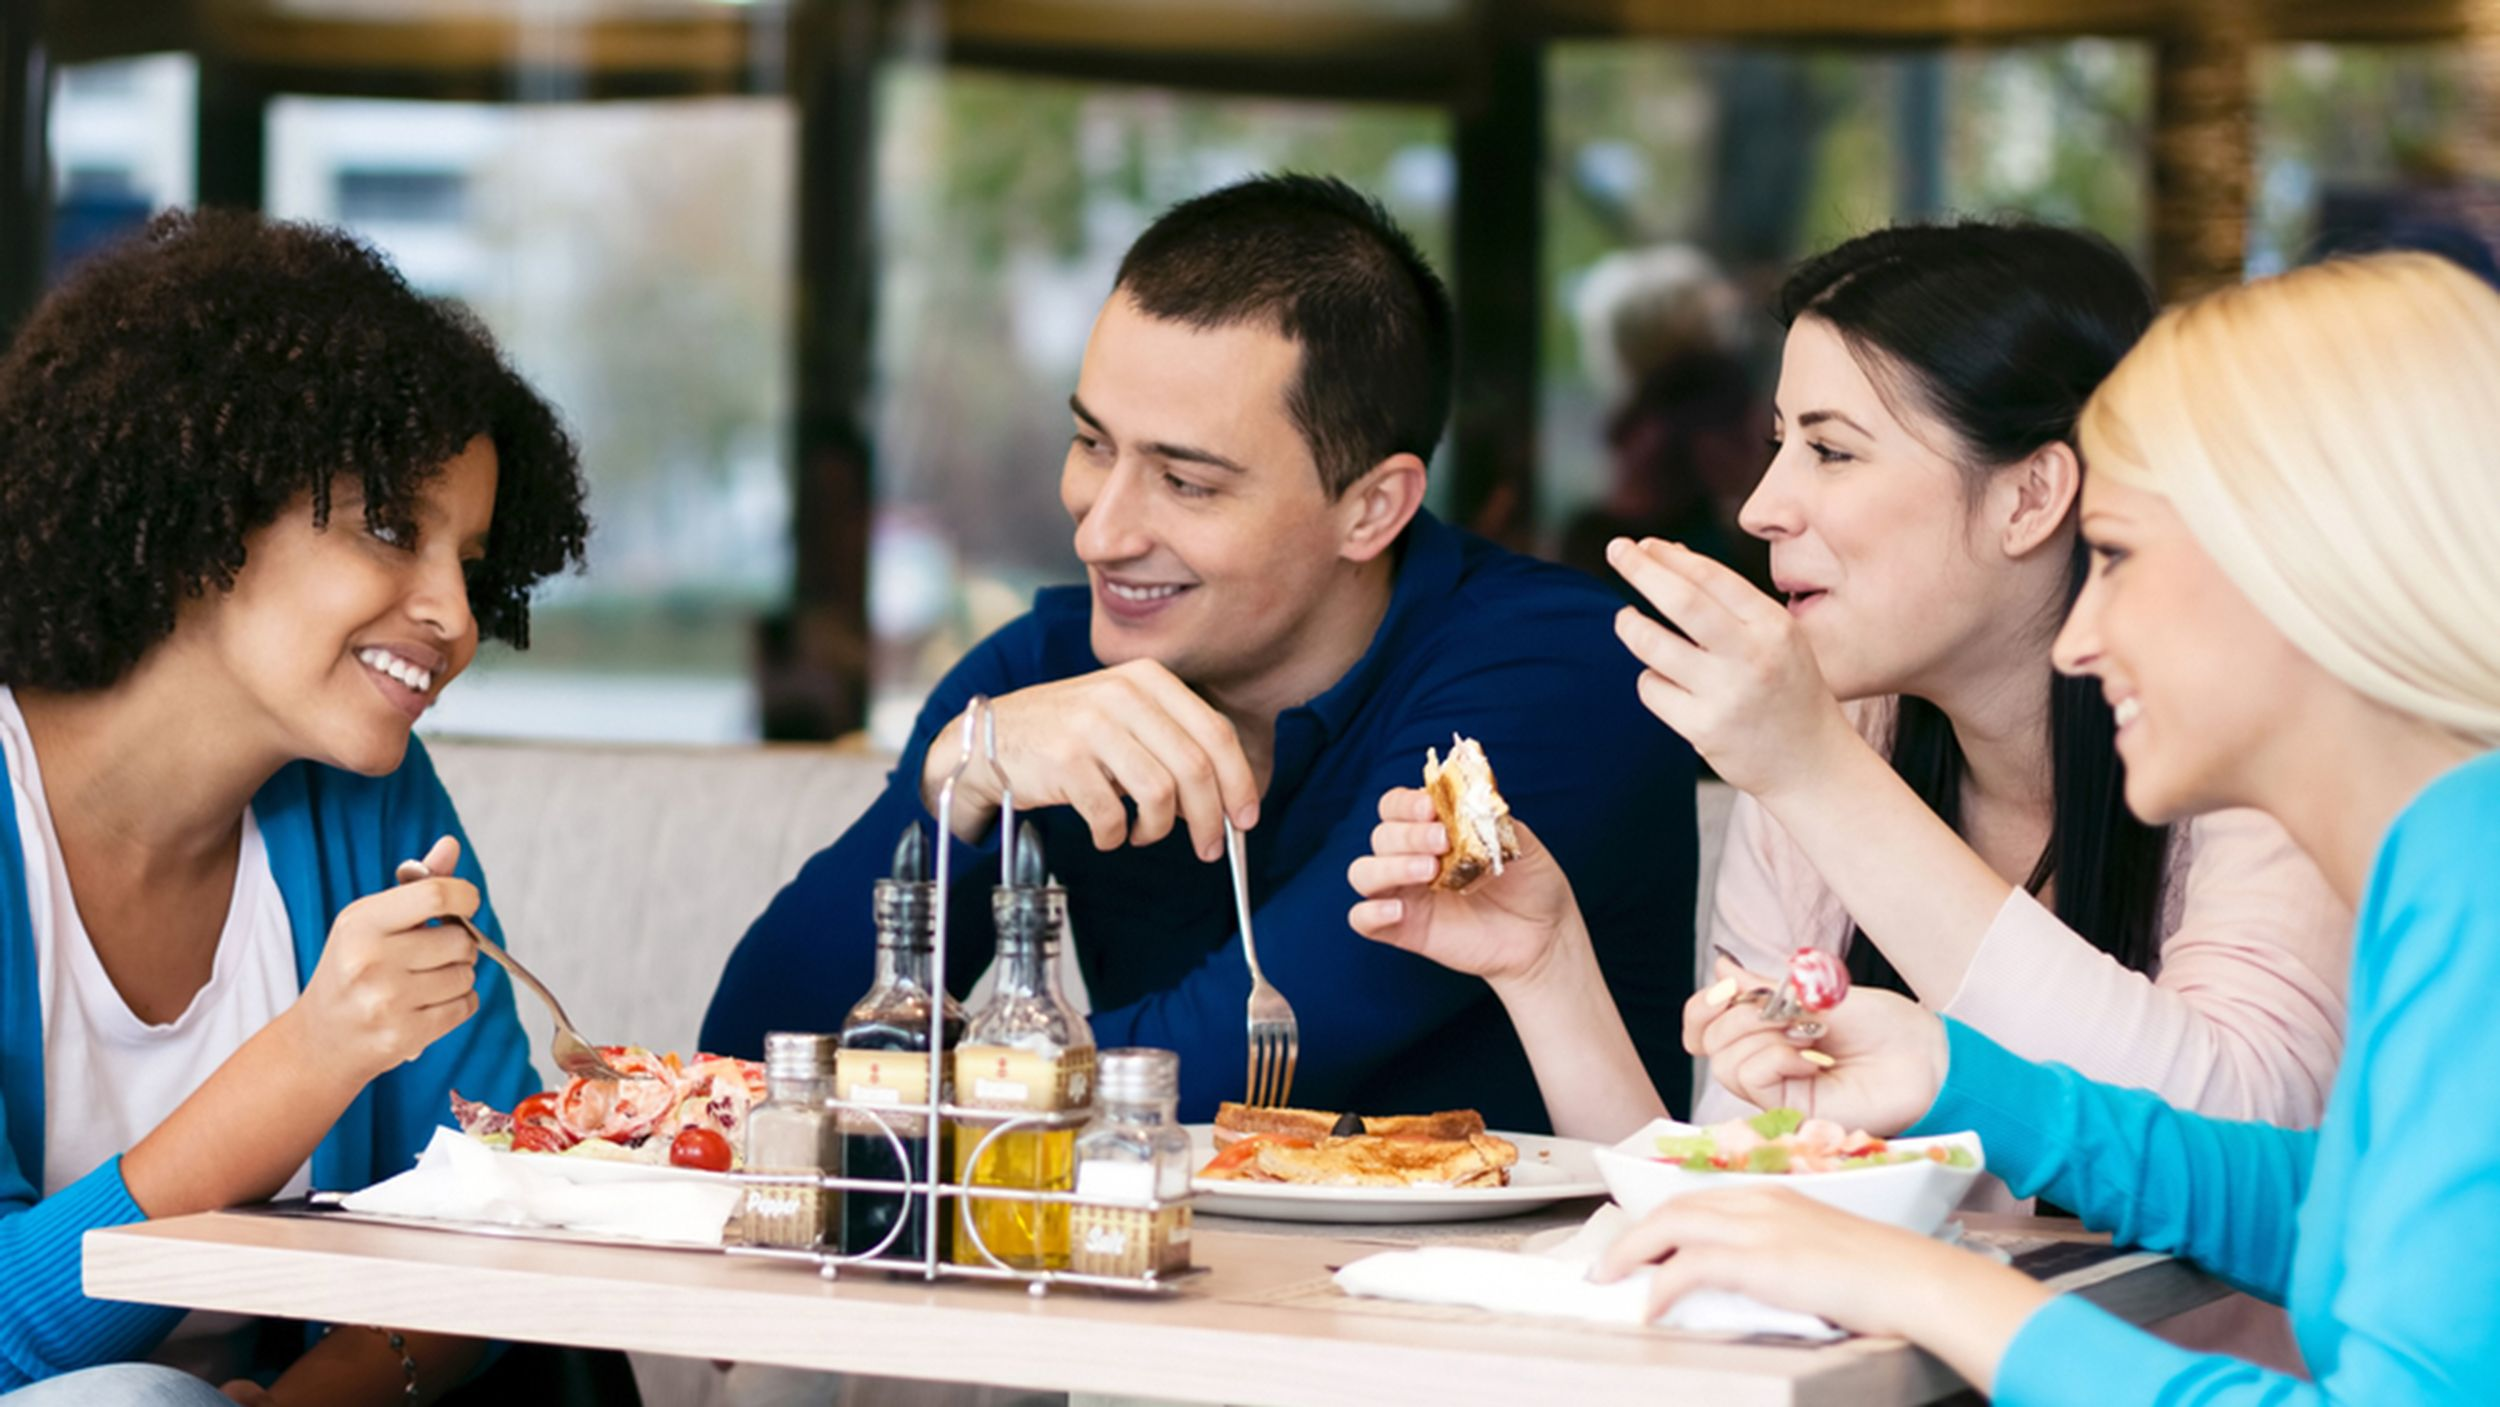 Where the 'fat' tables are in restaurants